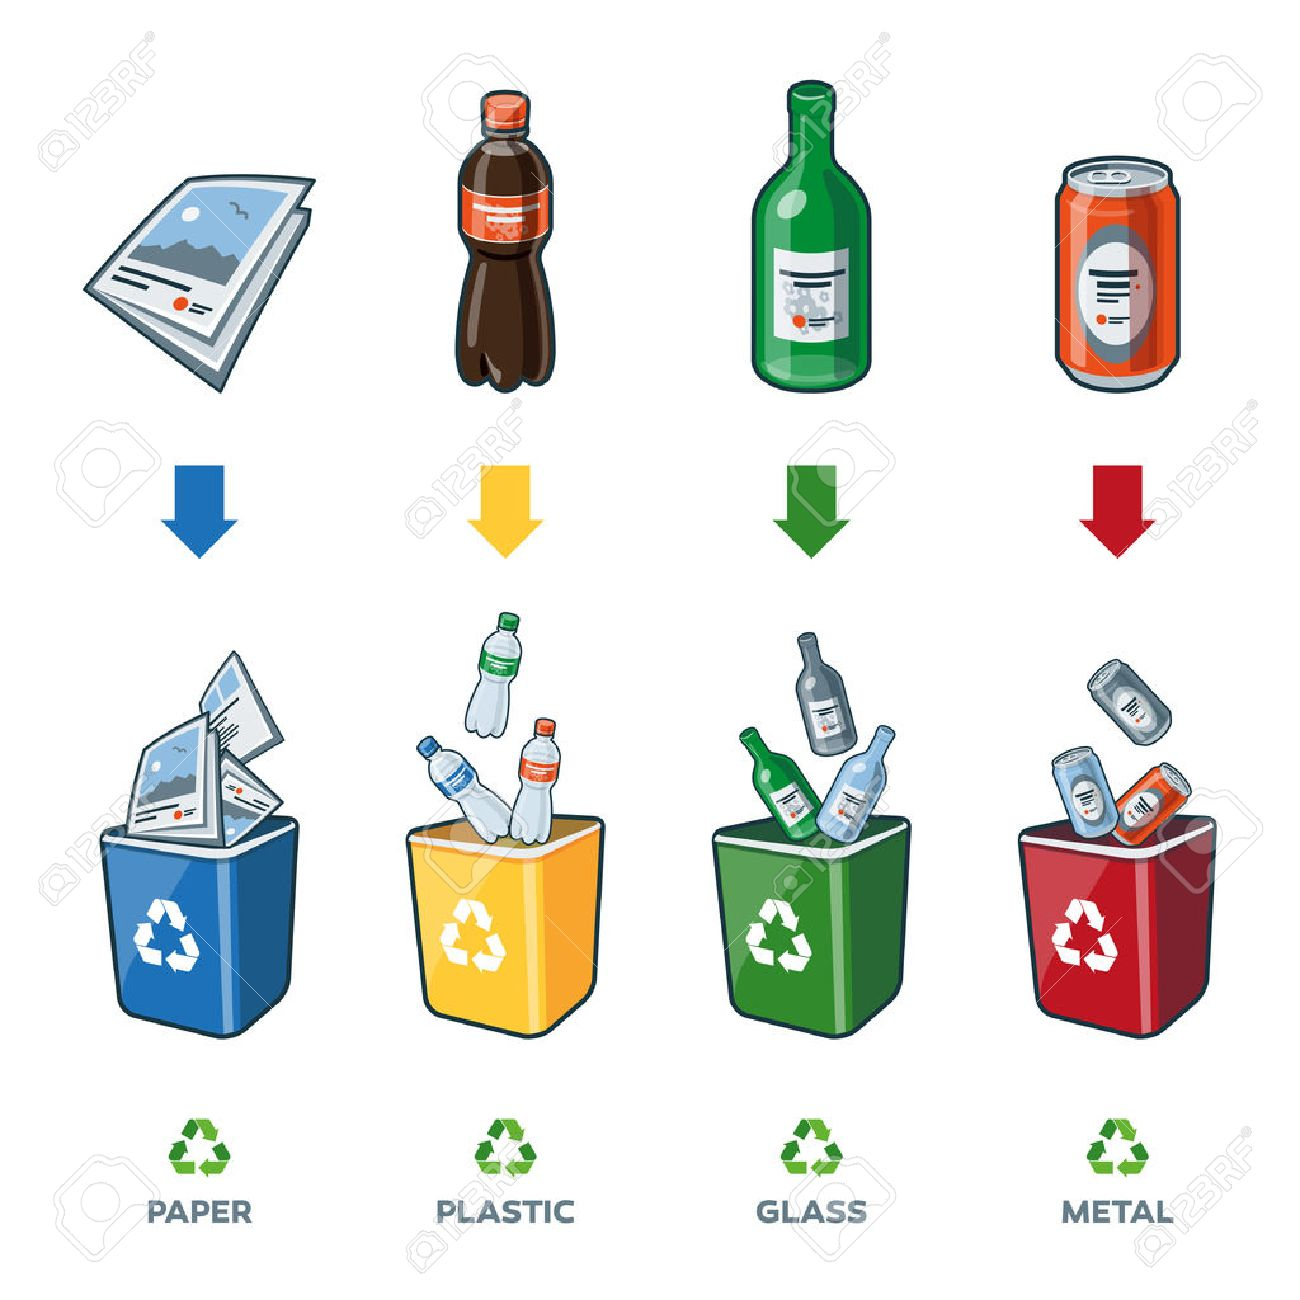 Plastic recycling clipart 3 » Clipart Station.